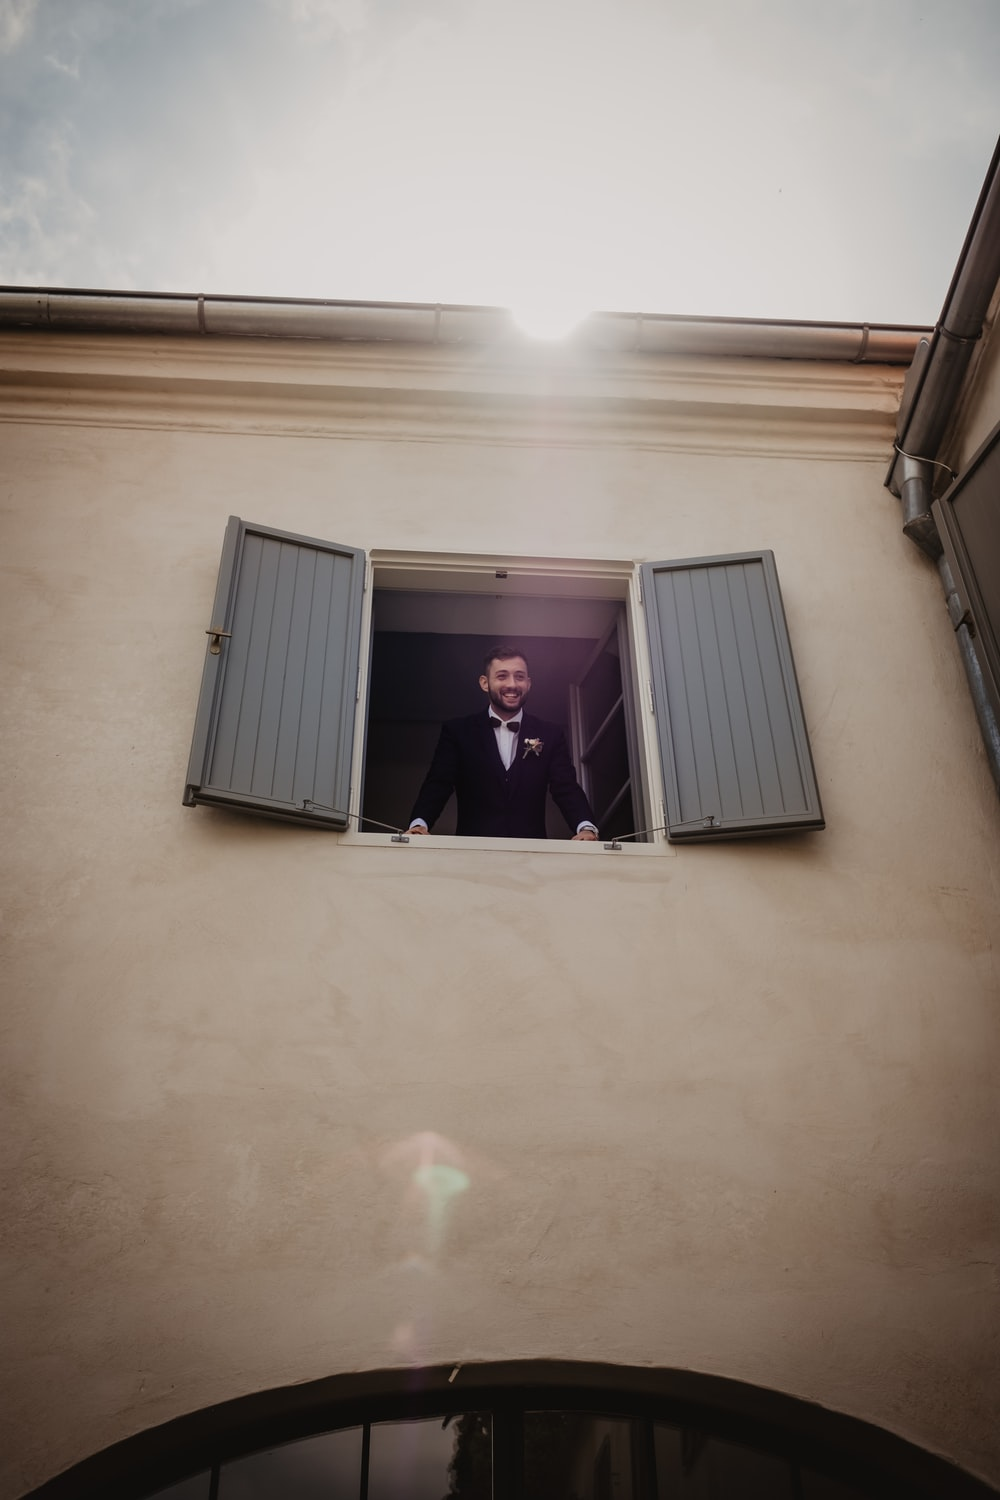 man in black suit jacket standing near white window blinds